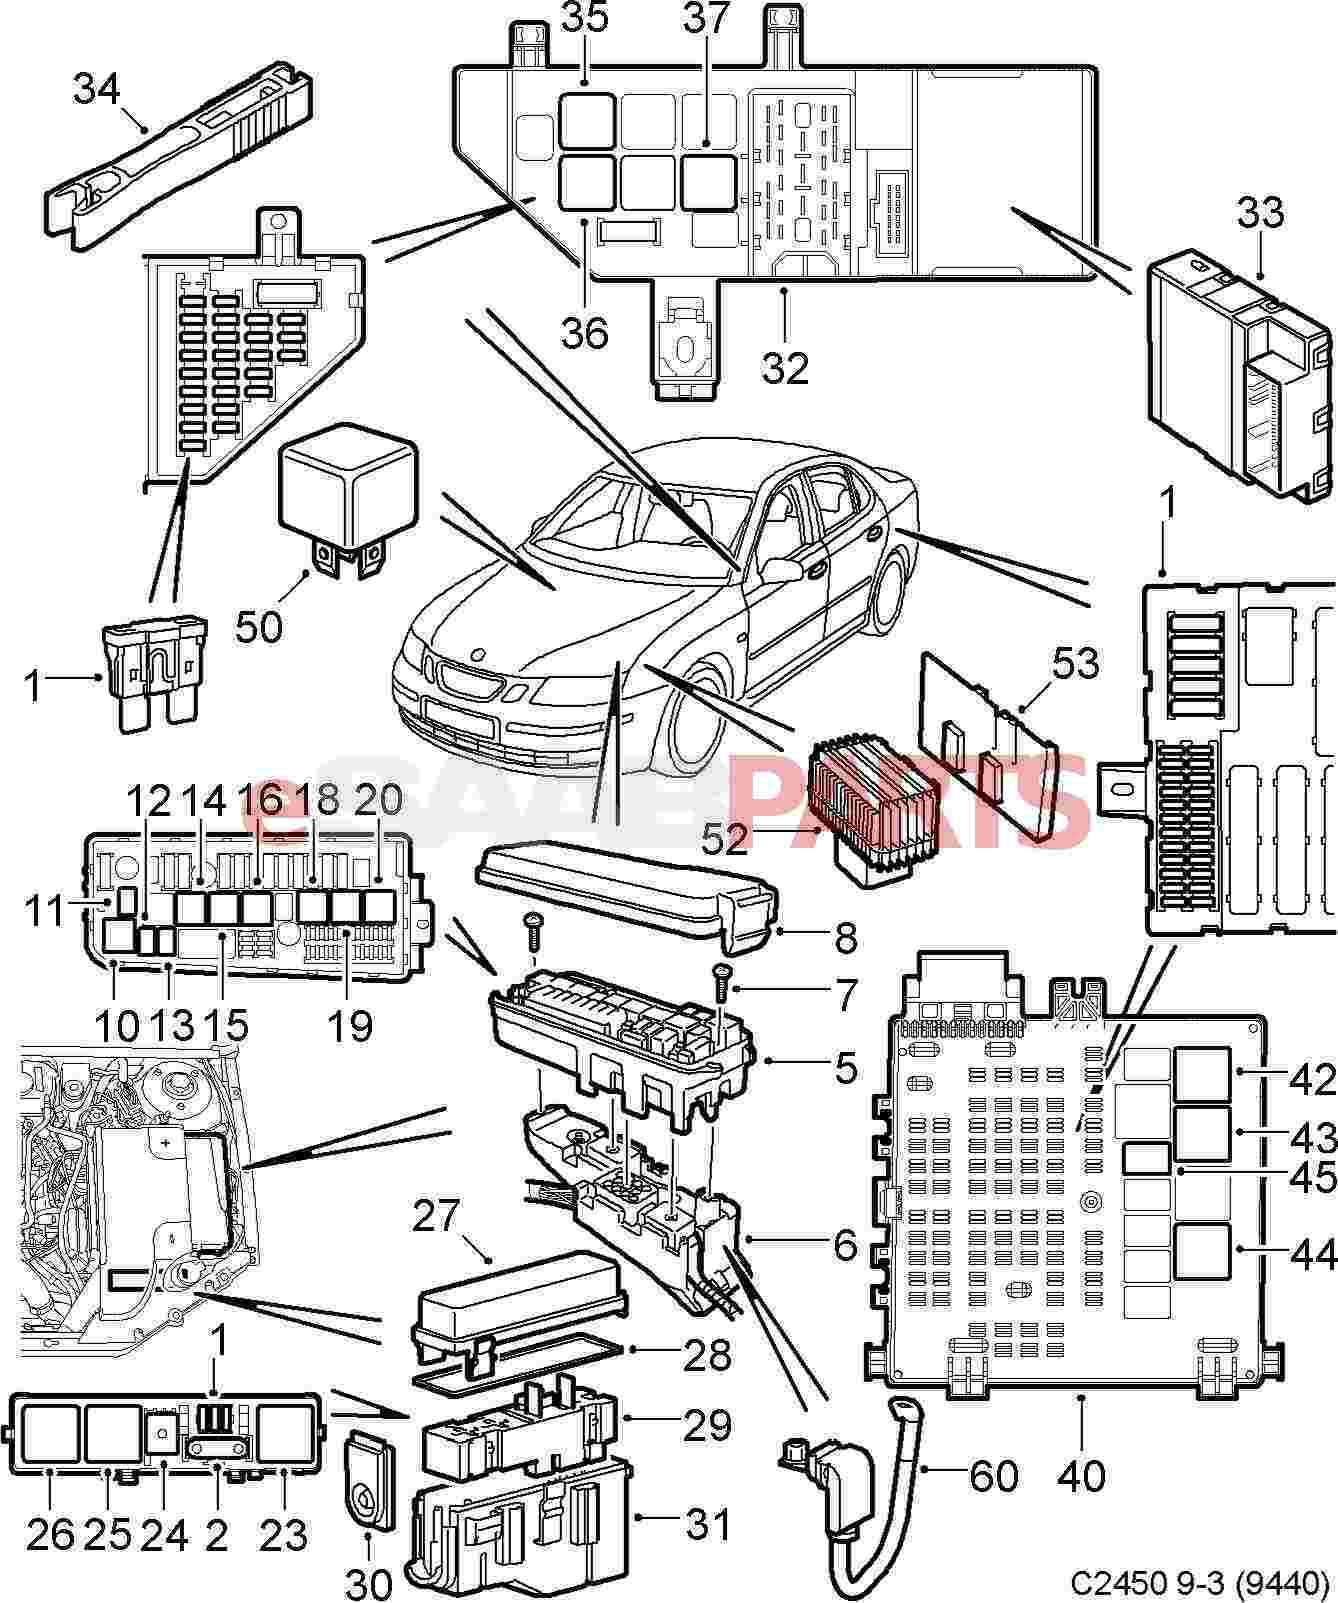 Saab 9 3 Wiring Diagrams - Wiring Diagram